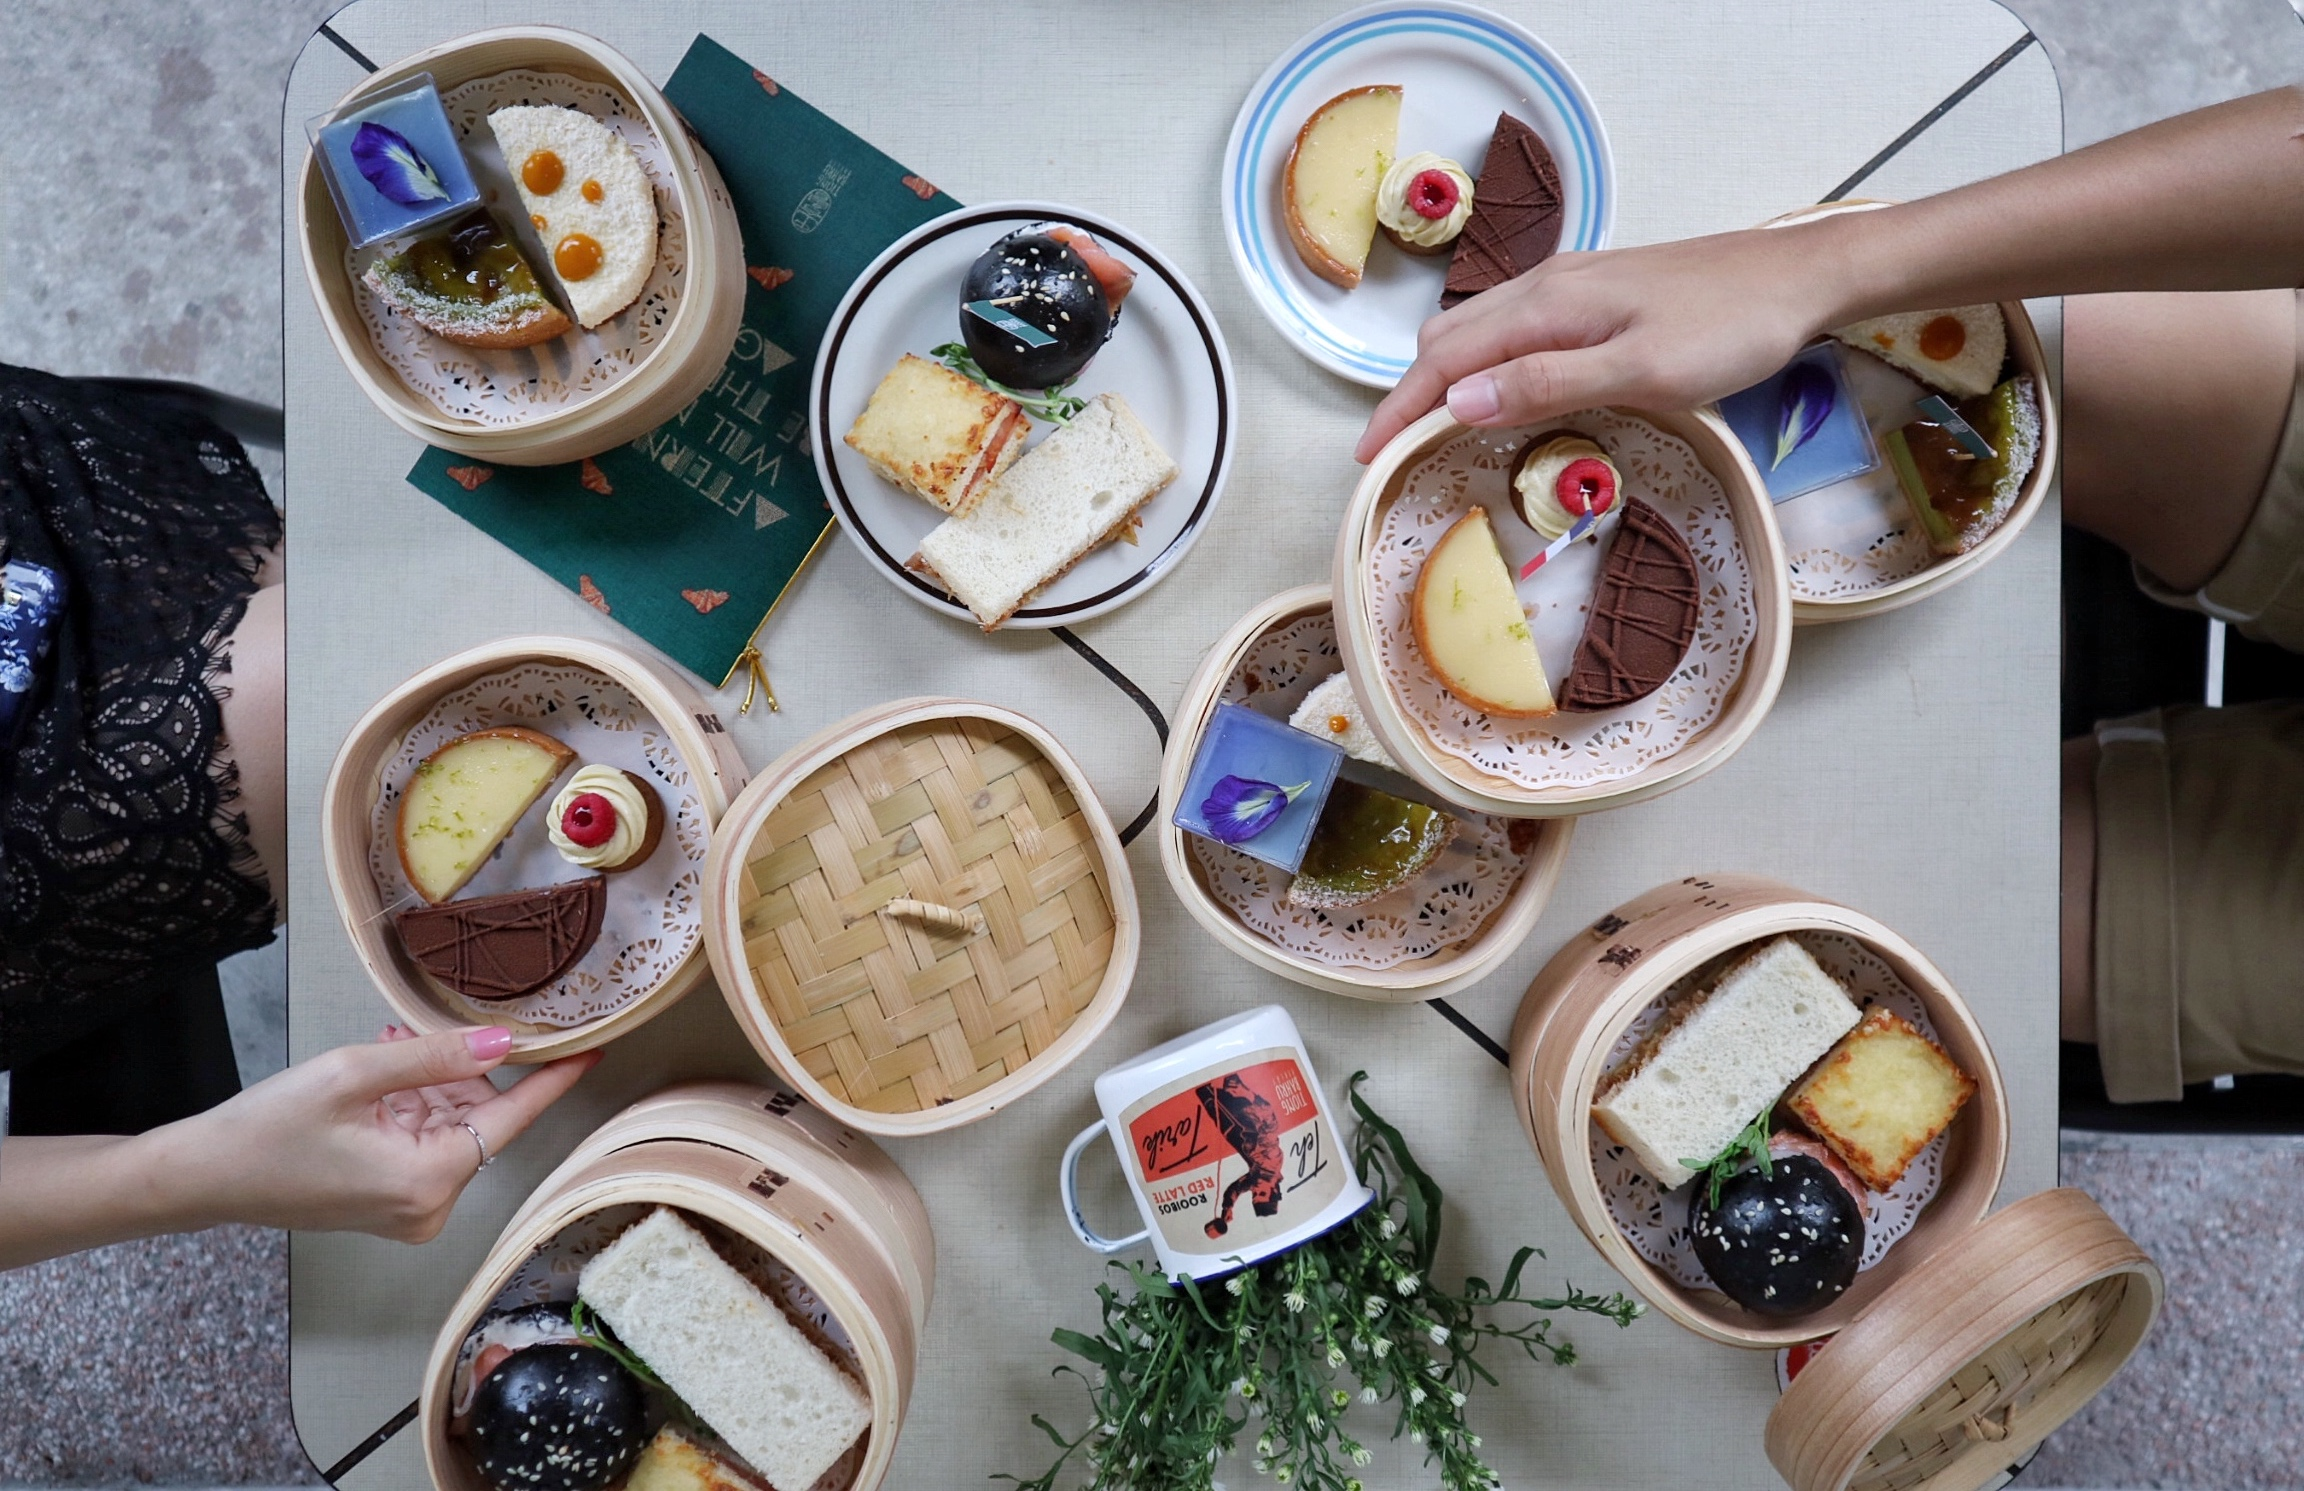 Tiong Bahru Bakery: Welcomes New and MUST-TRY Afternoon Three Sum from 3pm-5pm Daily